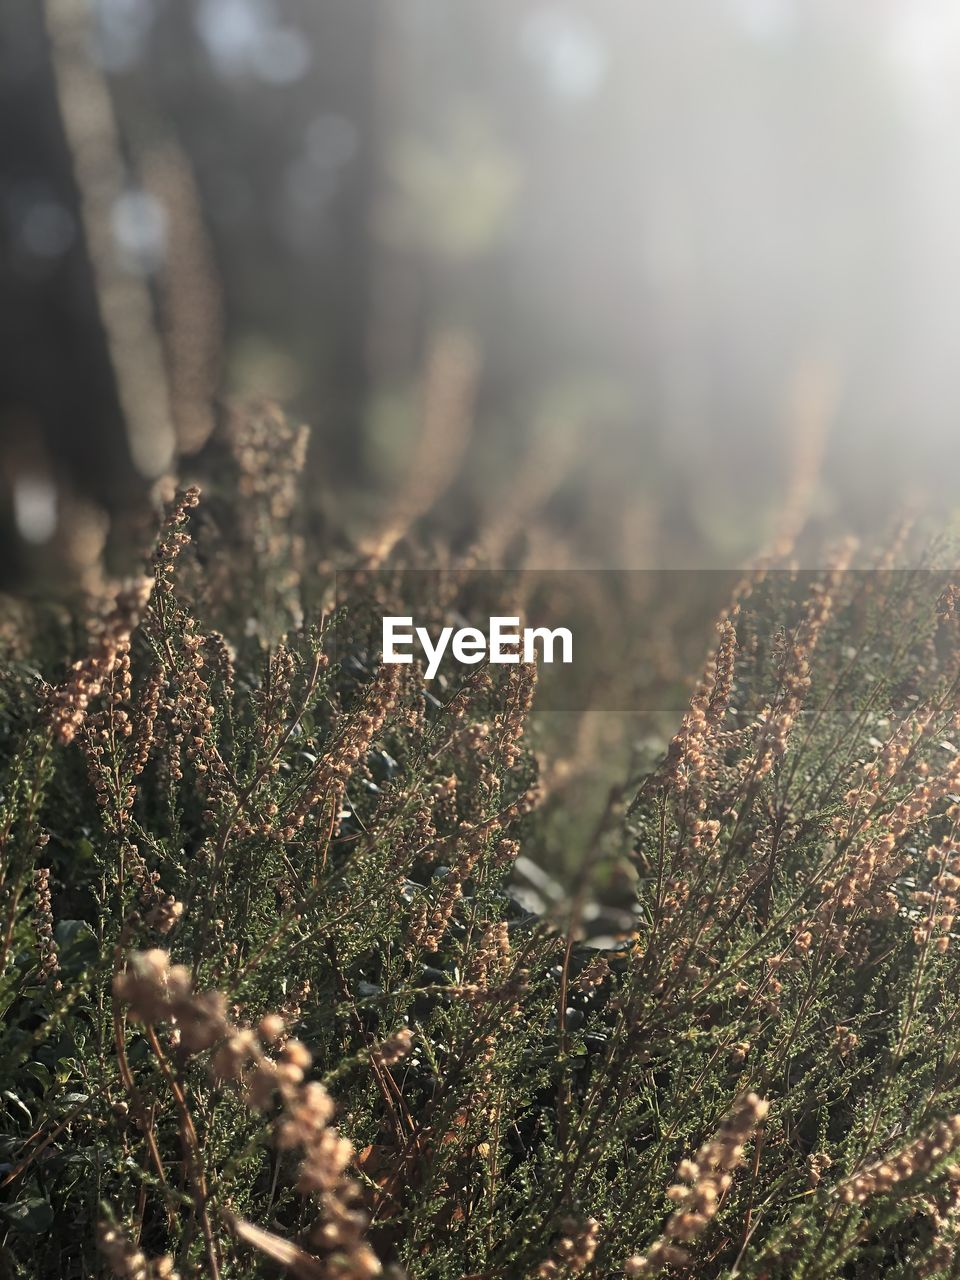 plant, growth, selective focus, nature, day, land, tranquility, no people, beauty in nature, close-up, sunlight, tree, outdoors, forest, green color, moss, field, focus on foreground, environment, scenics - nature, coniferous tree, fir tree